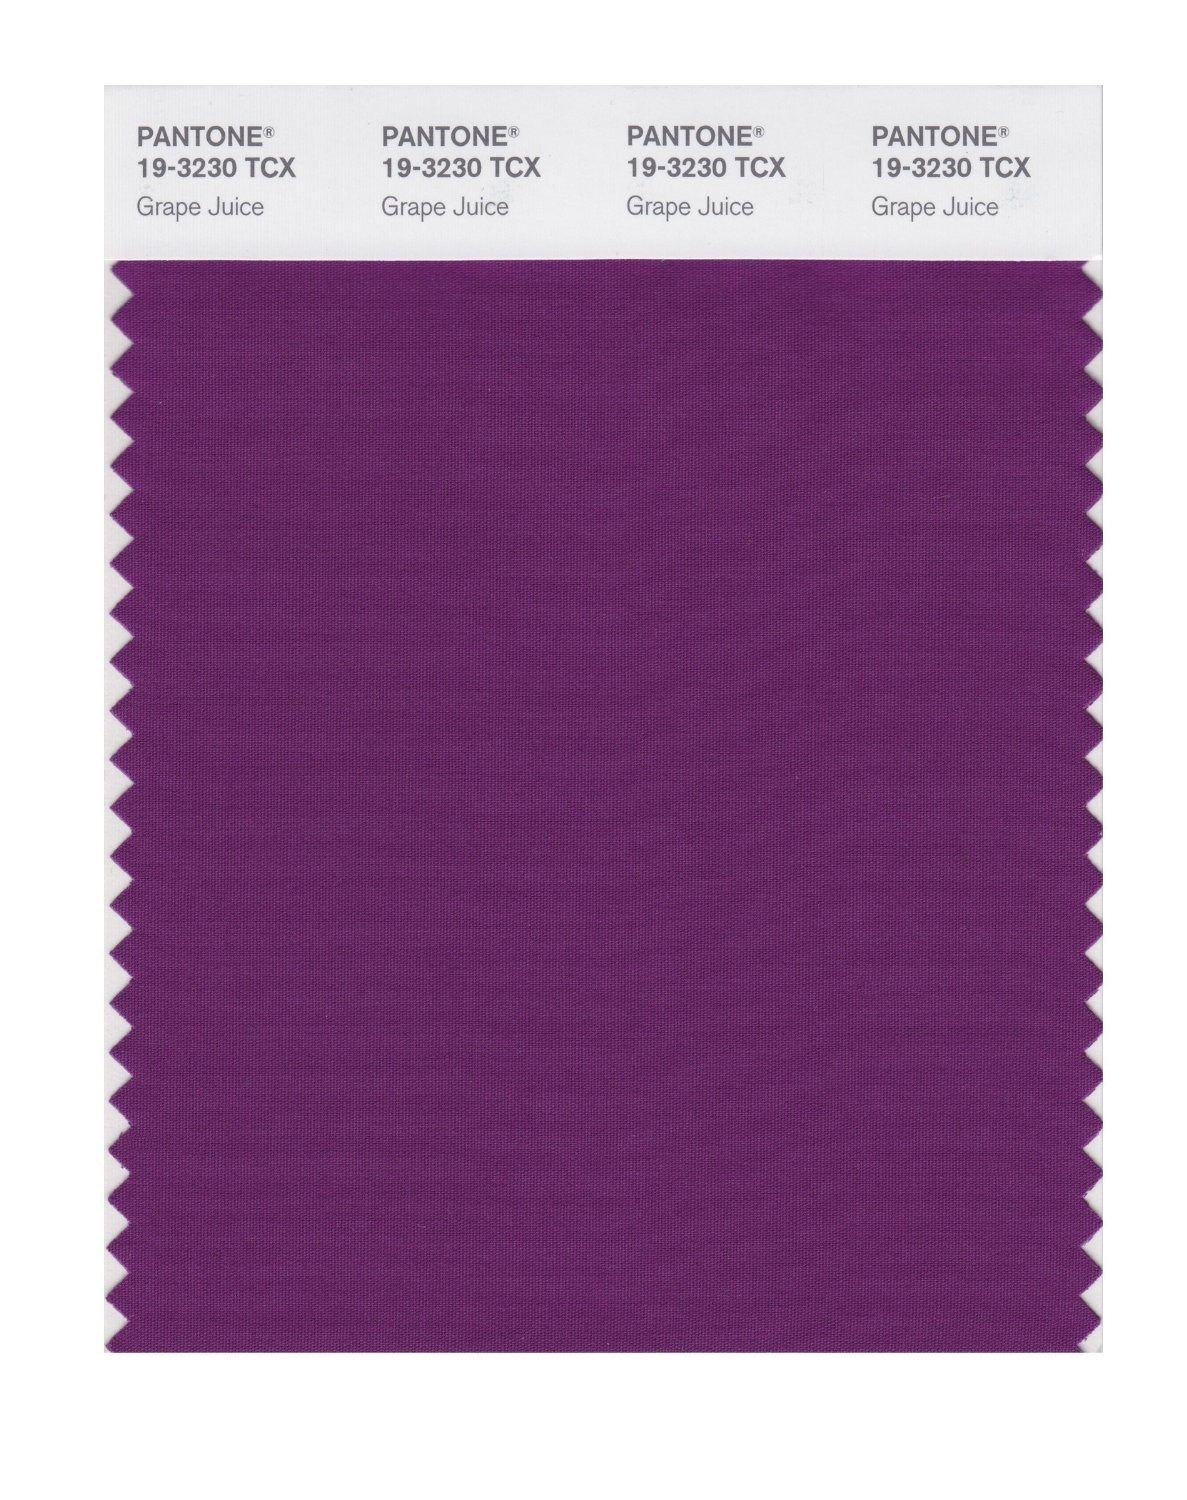 Pantone 19-3230 TCX Swatch Card Grape Juice